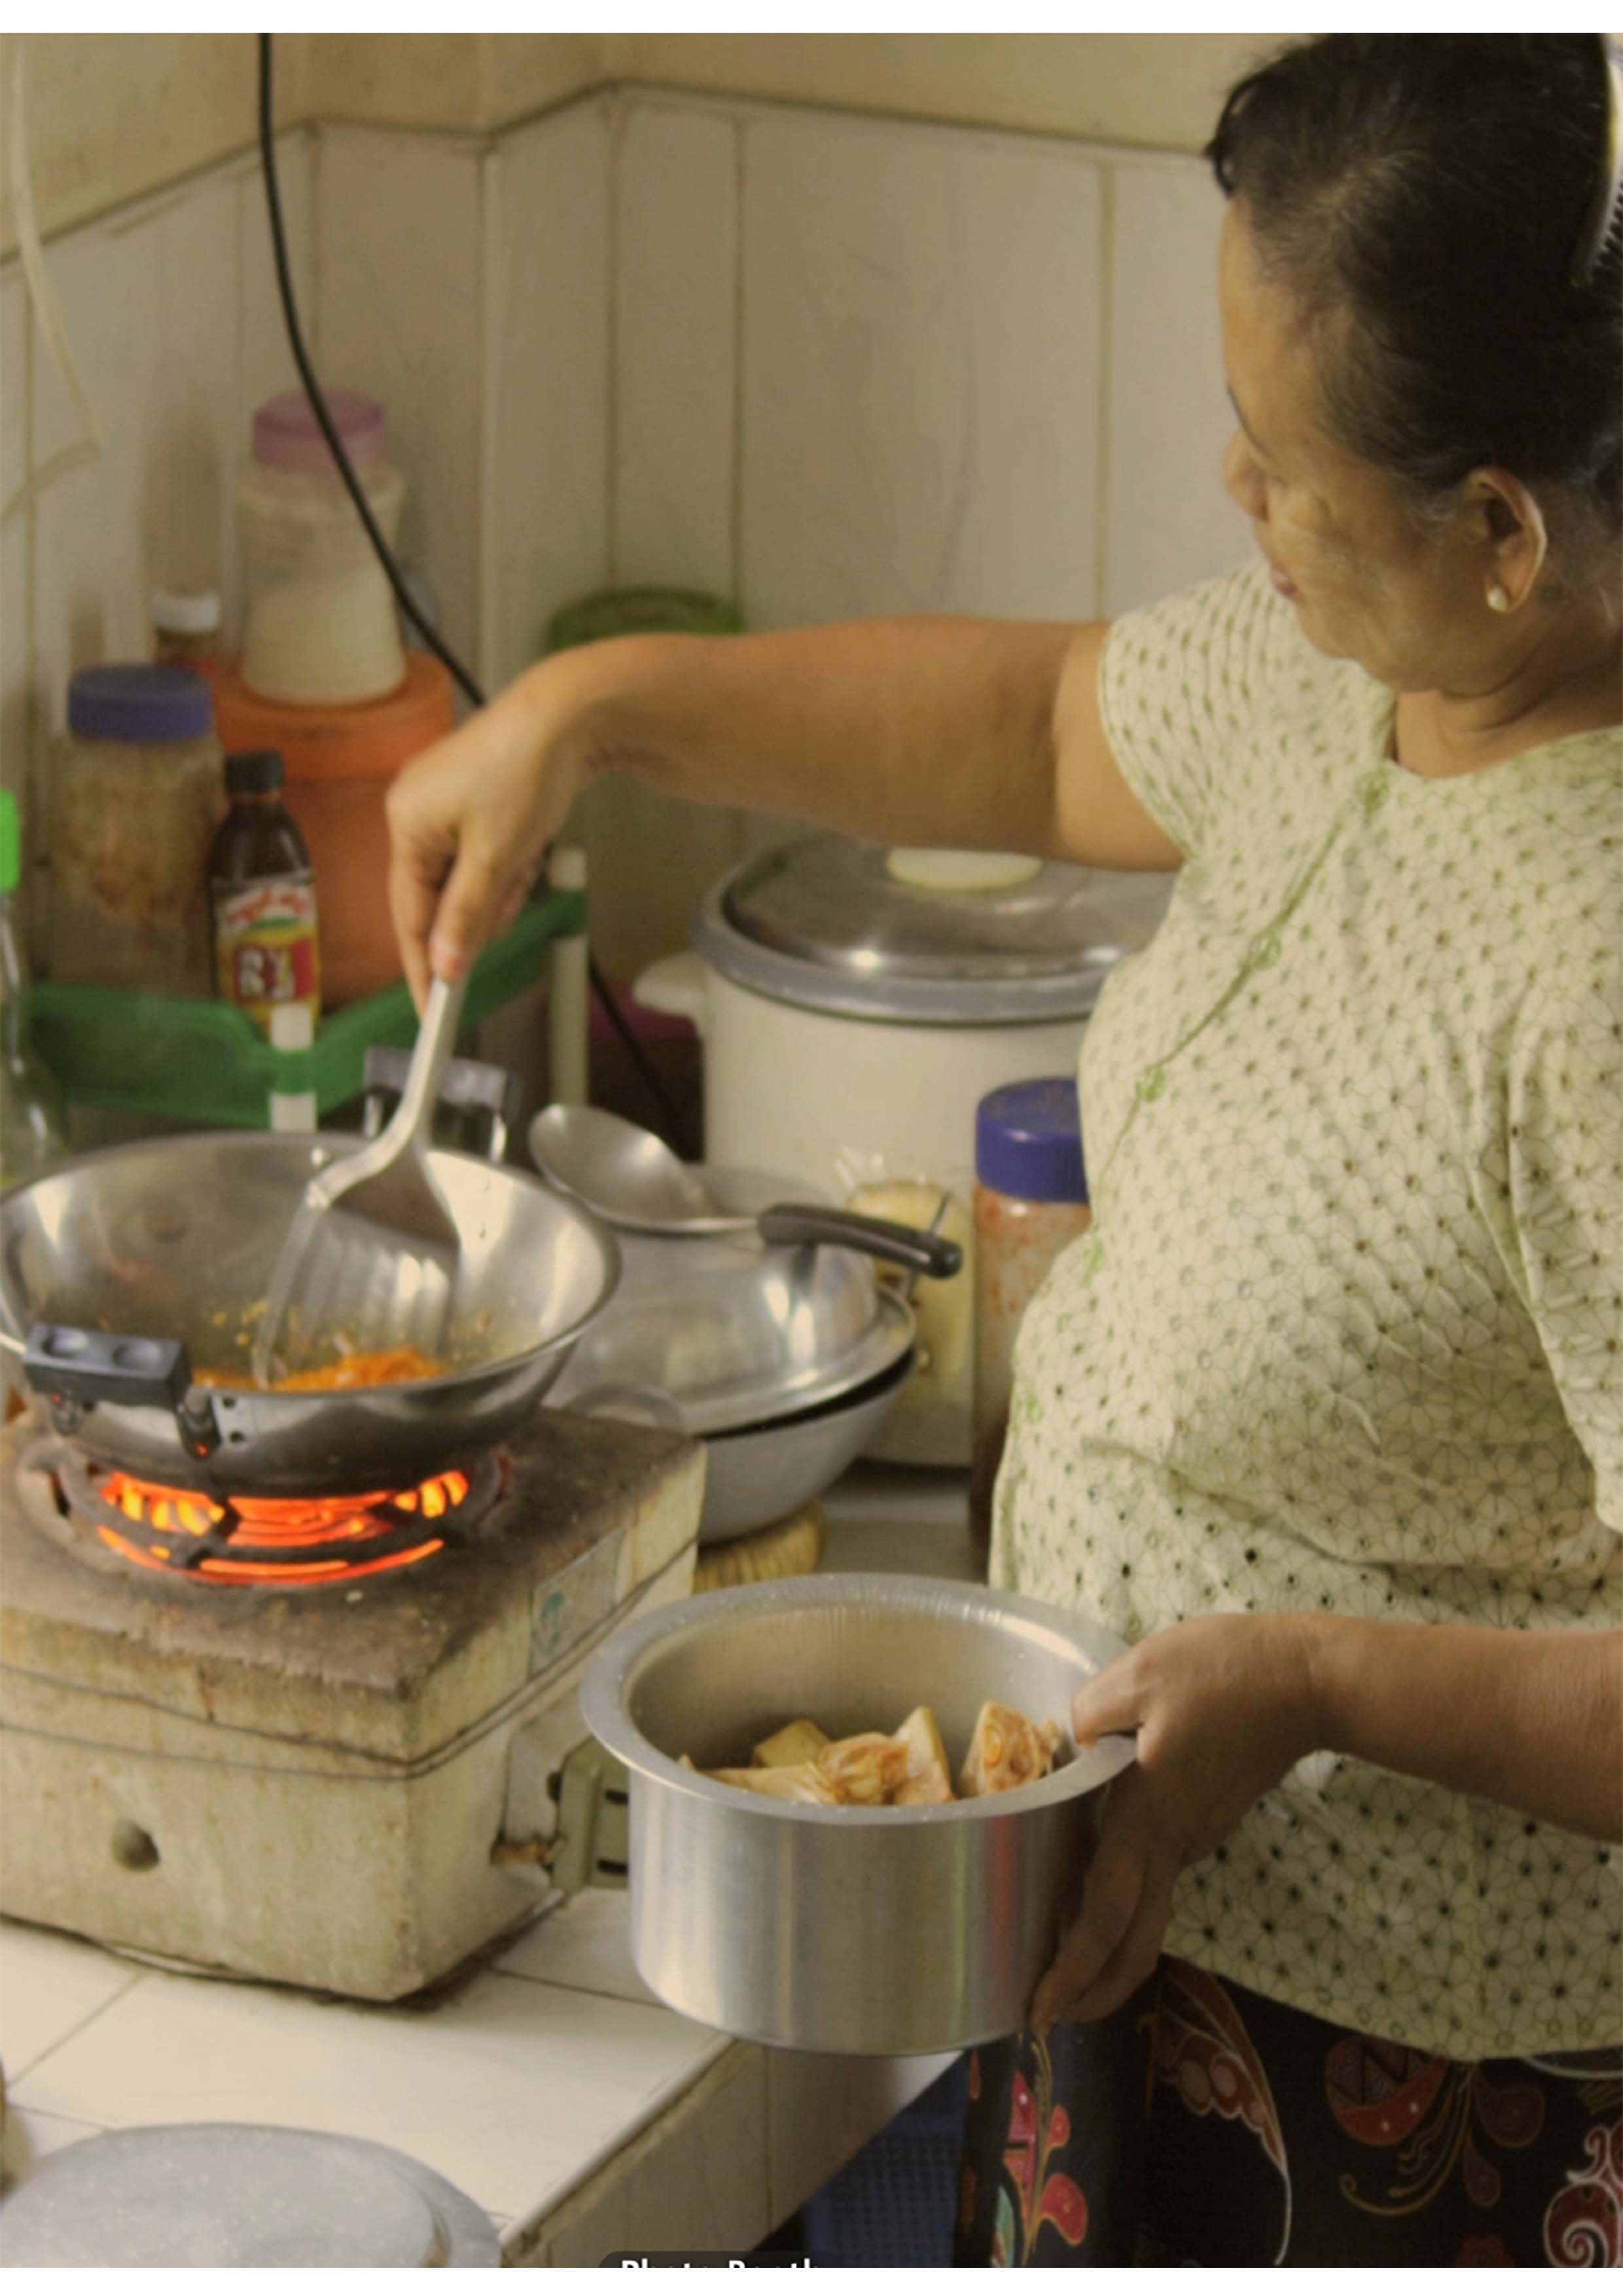 Cooking Jack Fruit Curry - Interview by: Ko LattRecorded by: Frankie FathersEdited by: Pe Maung SameIn cooperation with: Frankie FathersTranslated by: San Lin TunCurated by: Abadi Art Space